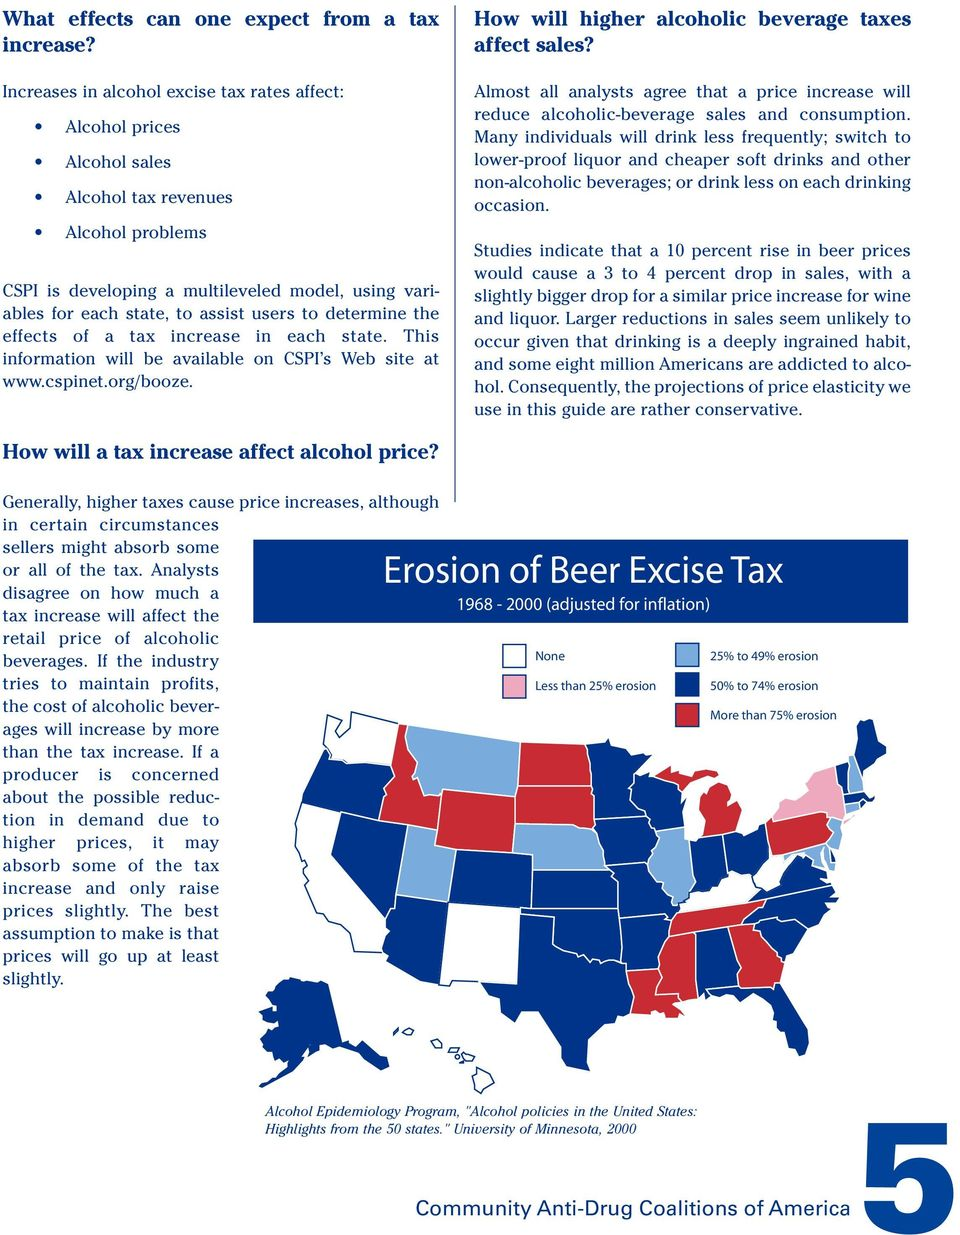 users to determine the effects of a tax increase in each state. This information will be available on CSPI s Web site at www.cspinet.org/booze. How will higher alcoholic beverage taxes affect sales?